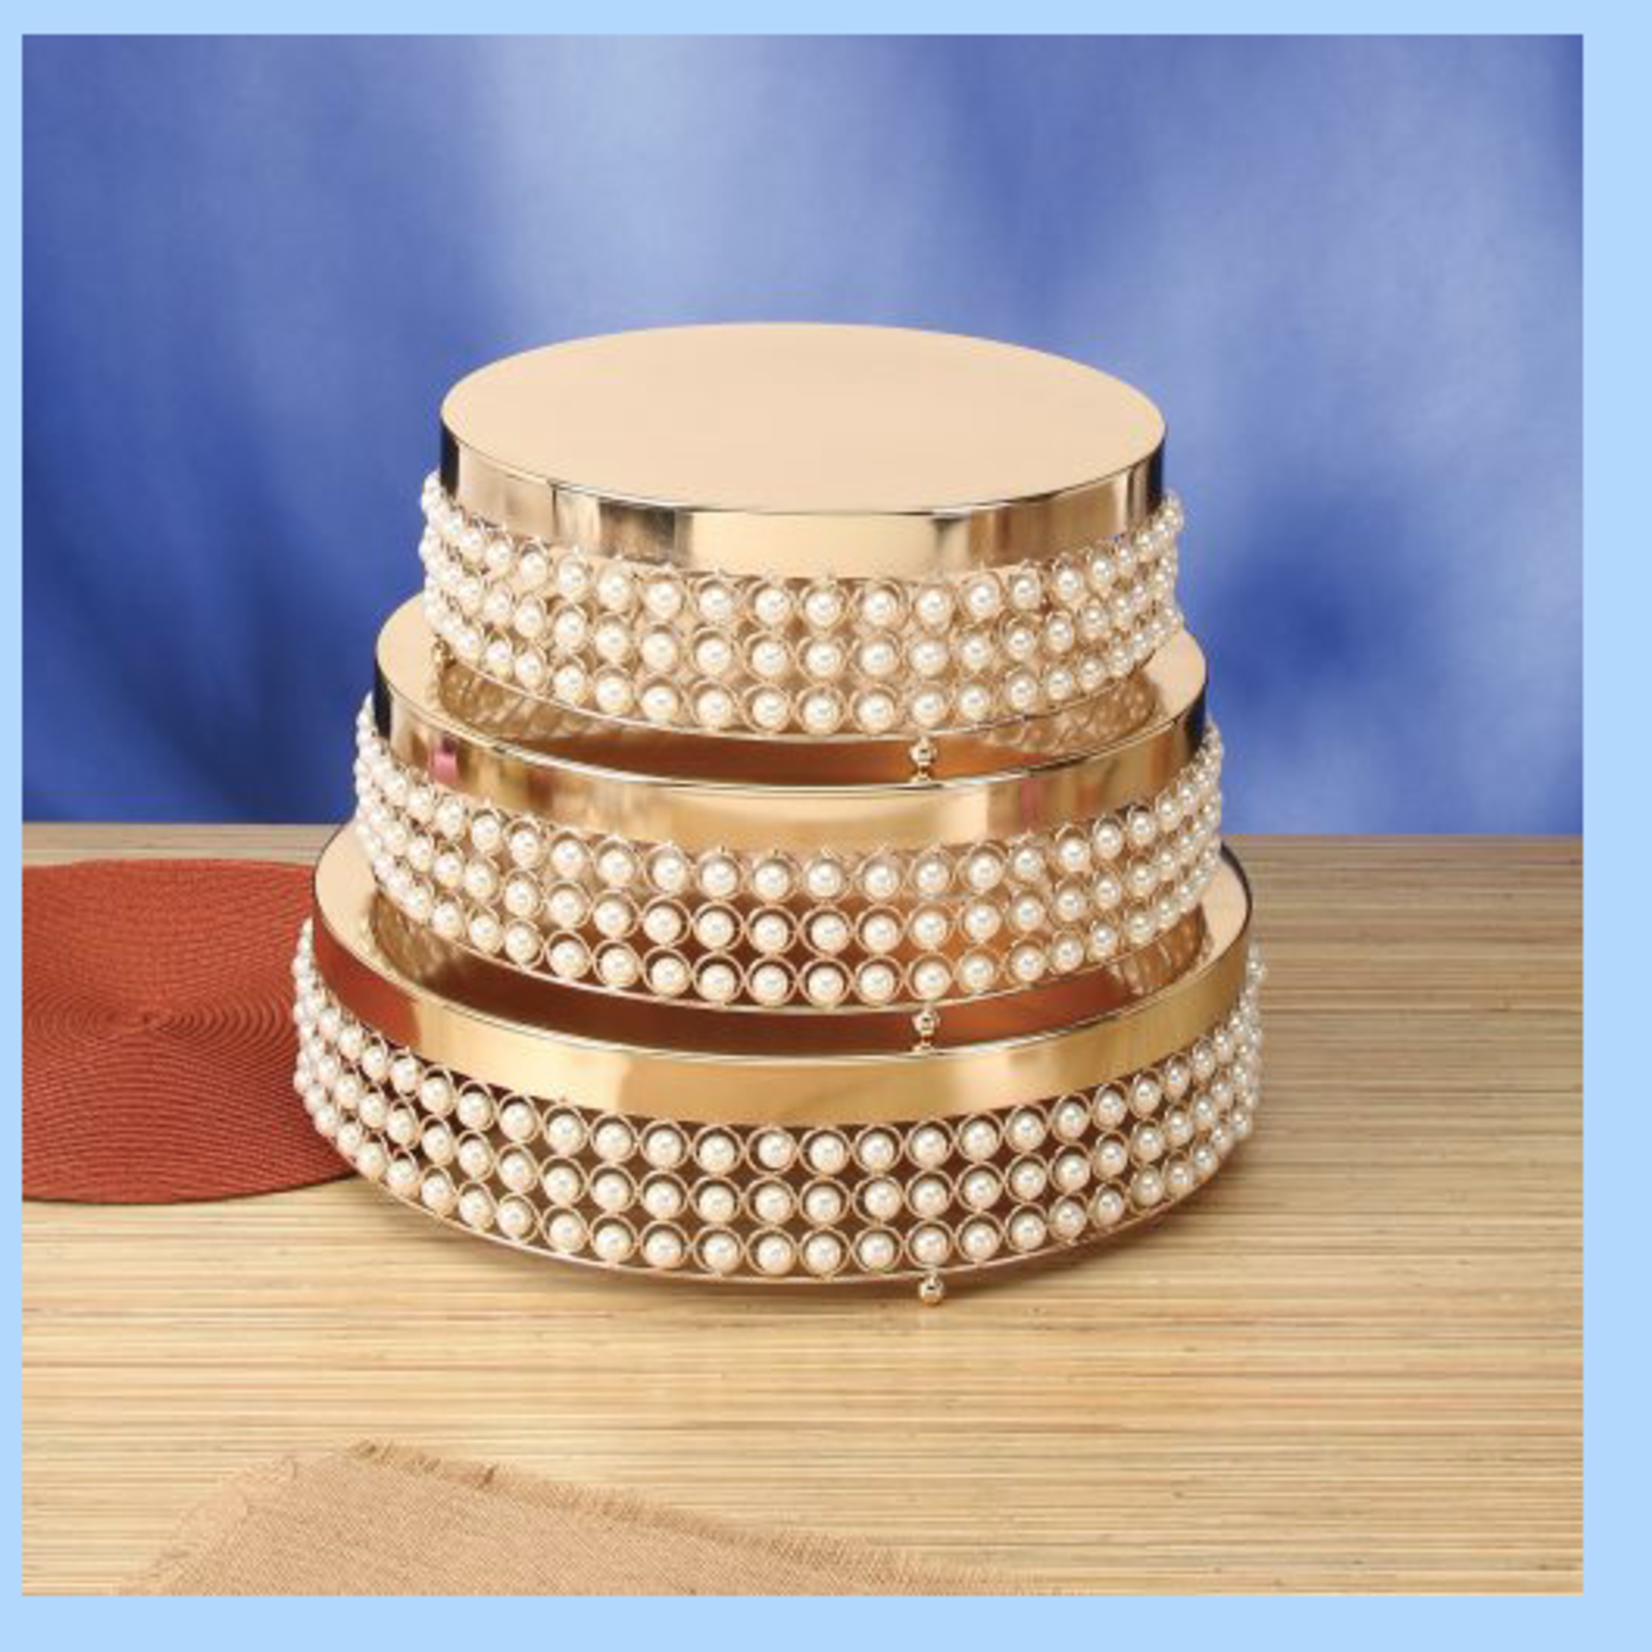 """4.75""""H X 14""""D  ROUND METAL CAKE STAND W/ PEARLS"""